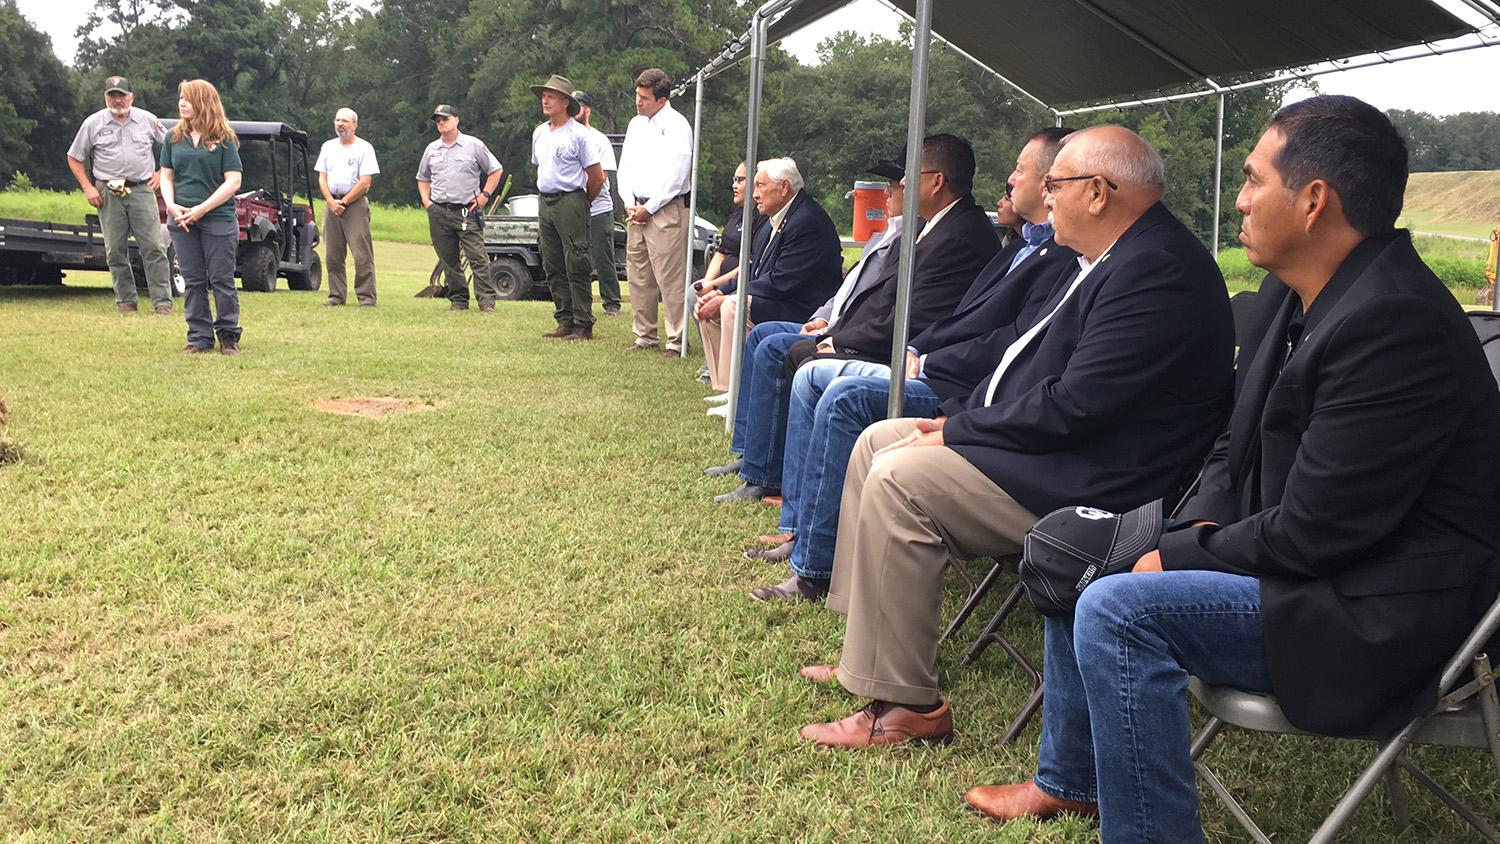 Muscogee (Creek) Nation and National Parks Service bring ancestors home